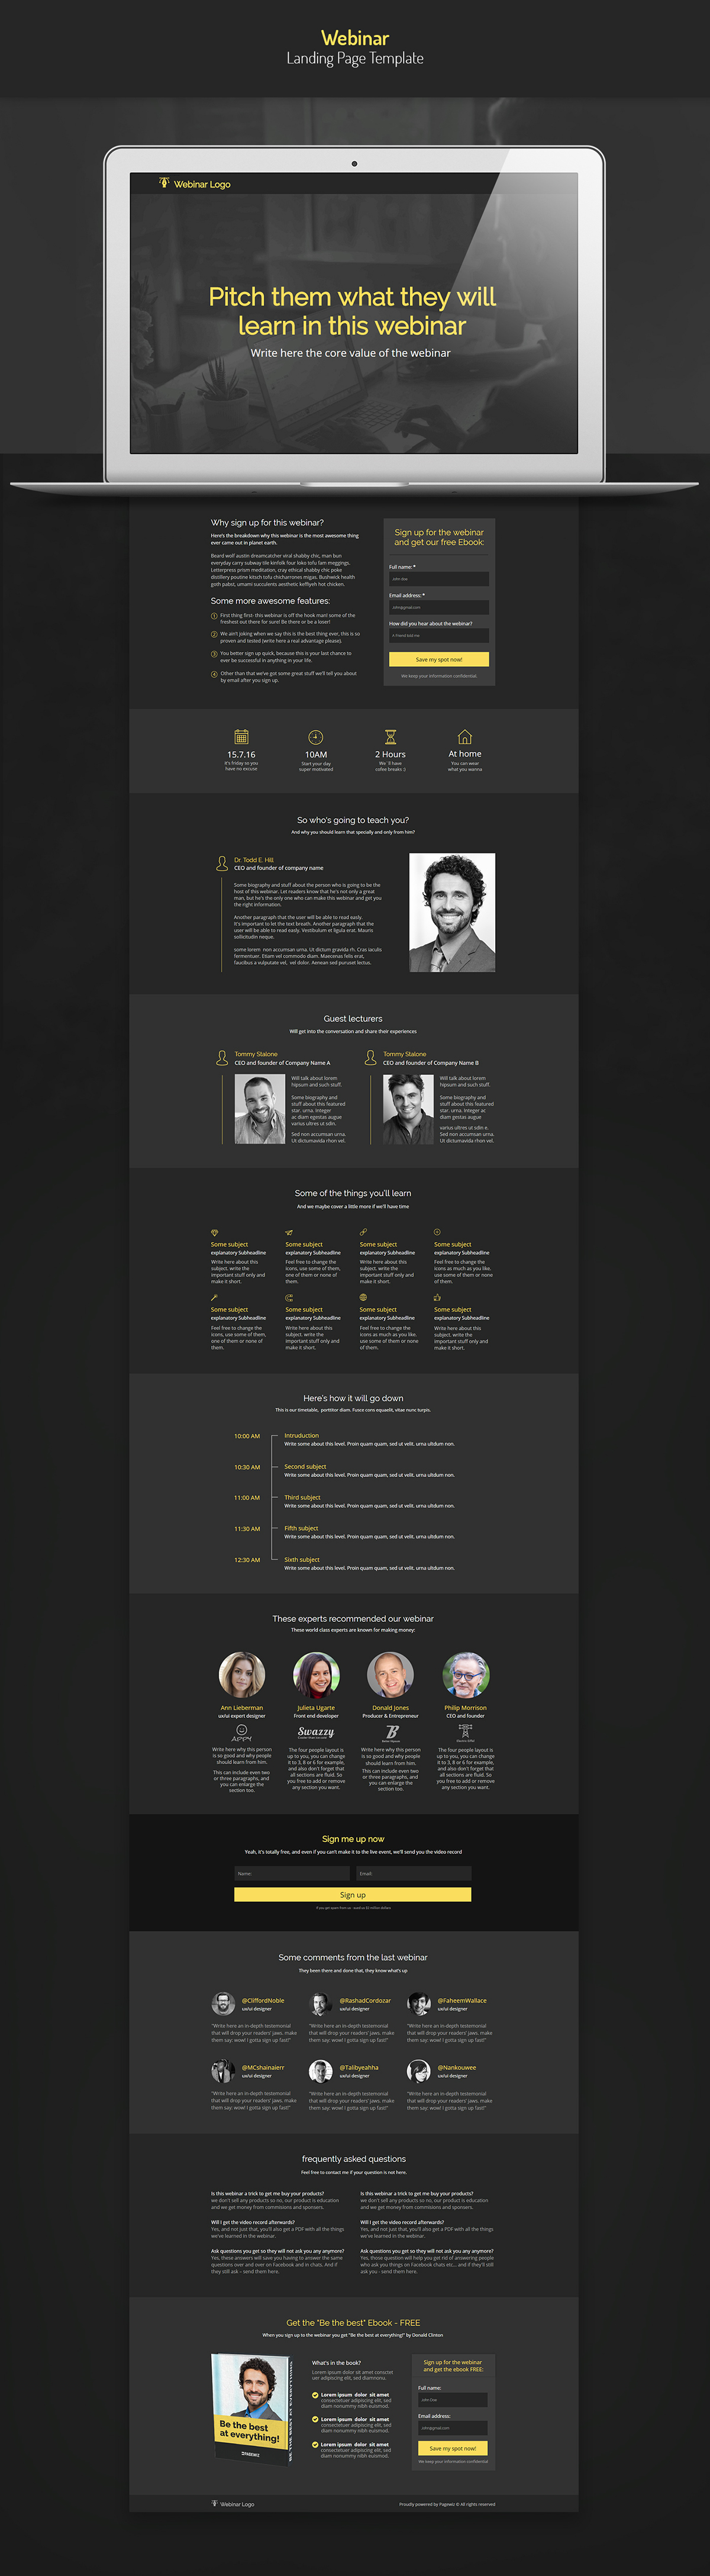 Black Webinar Landing Page Template on Student Show